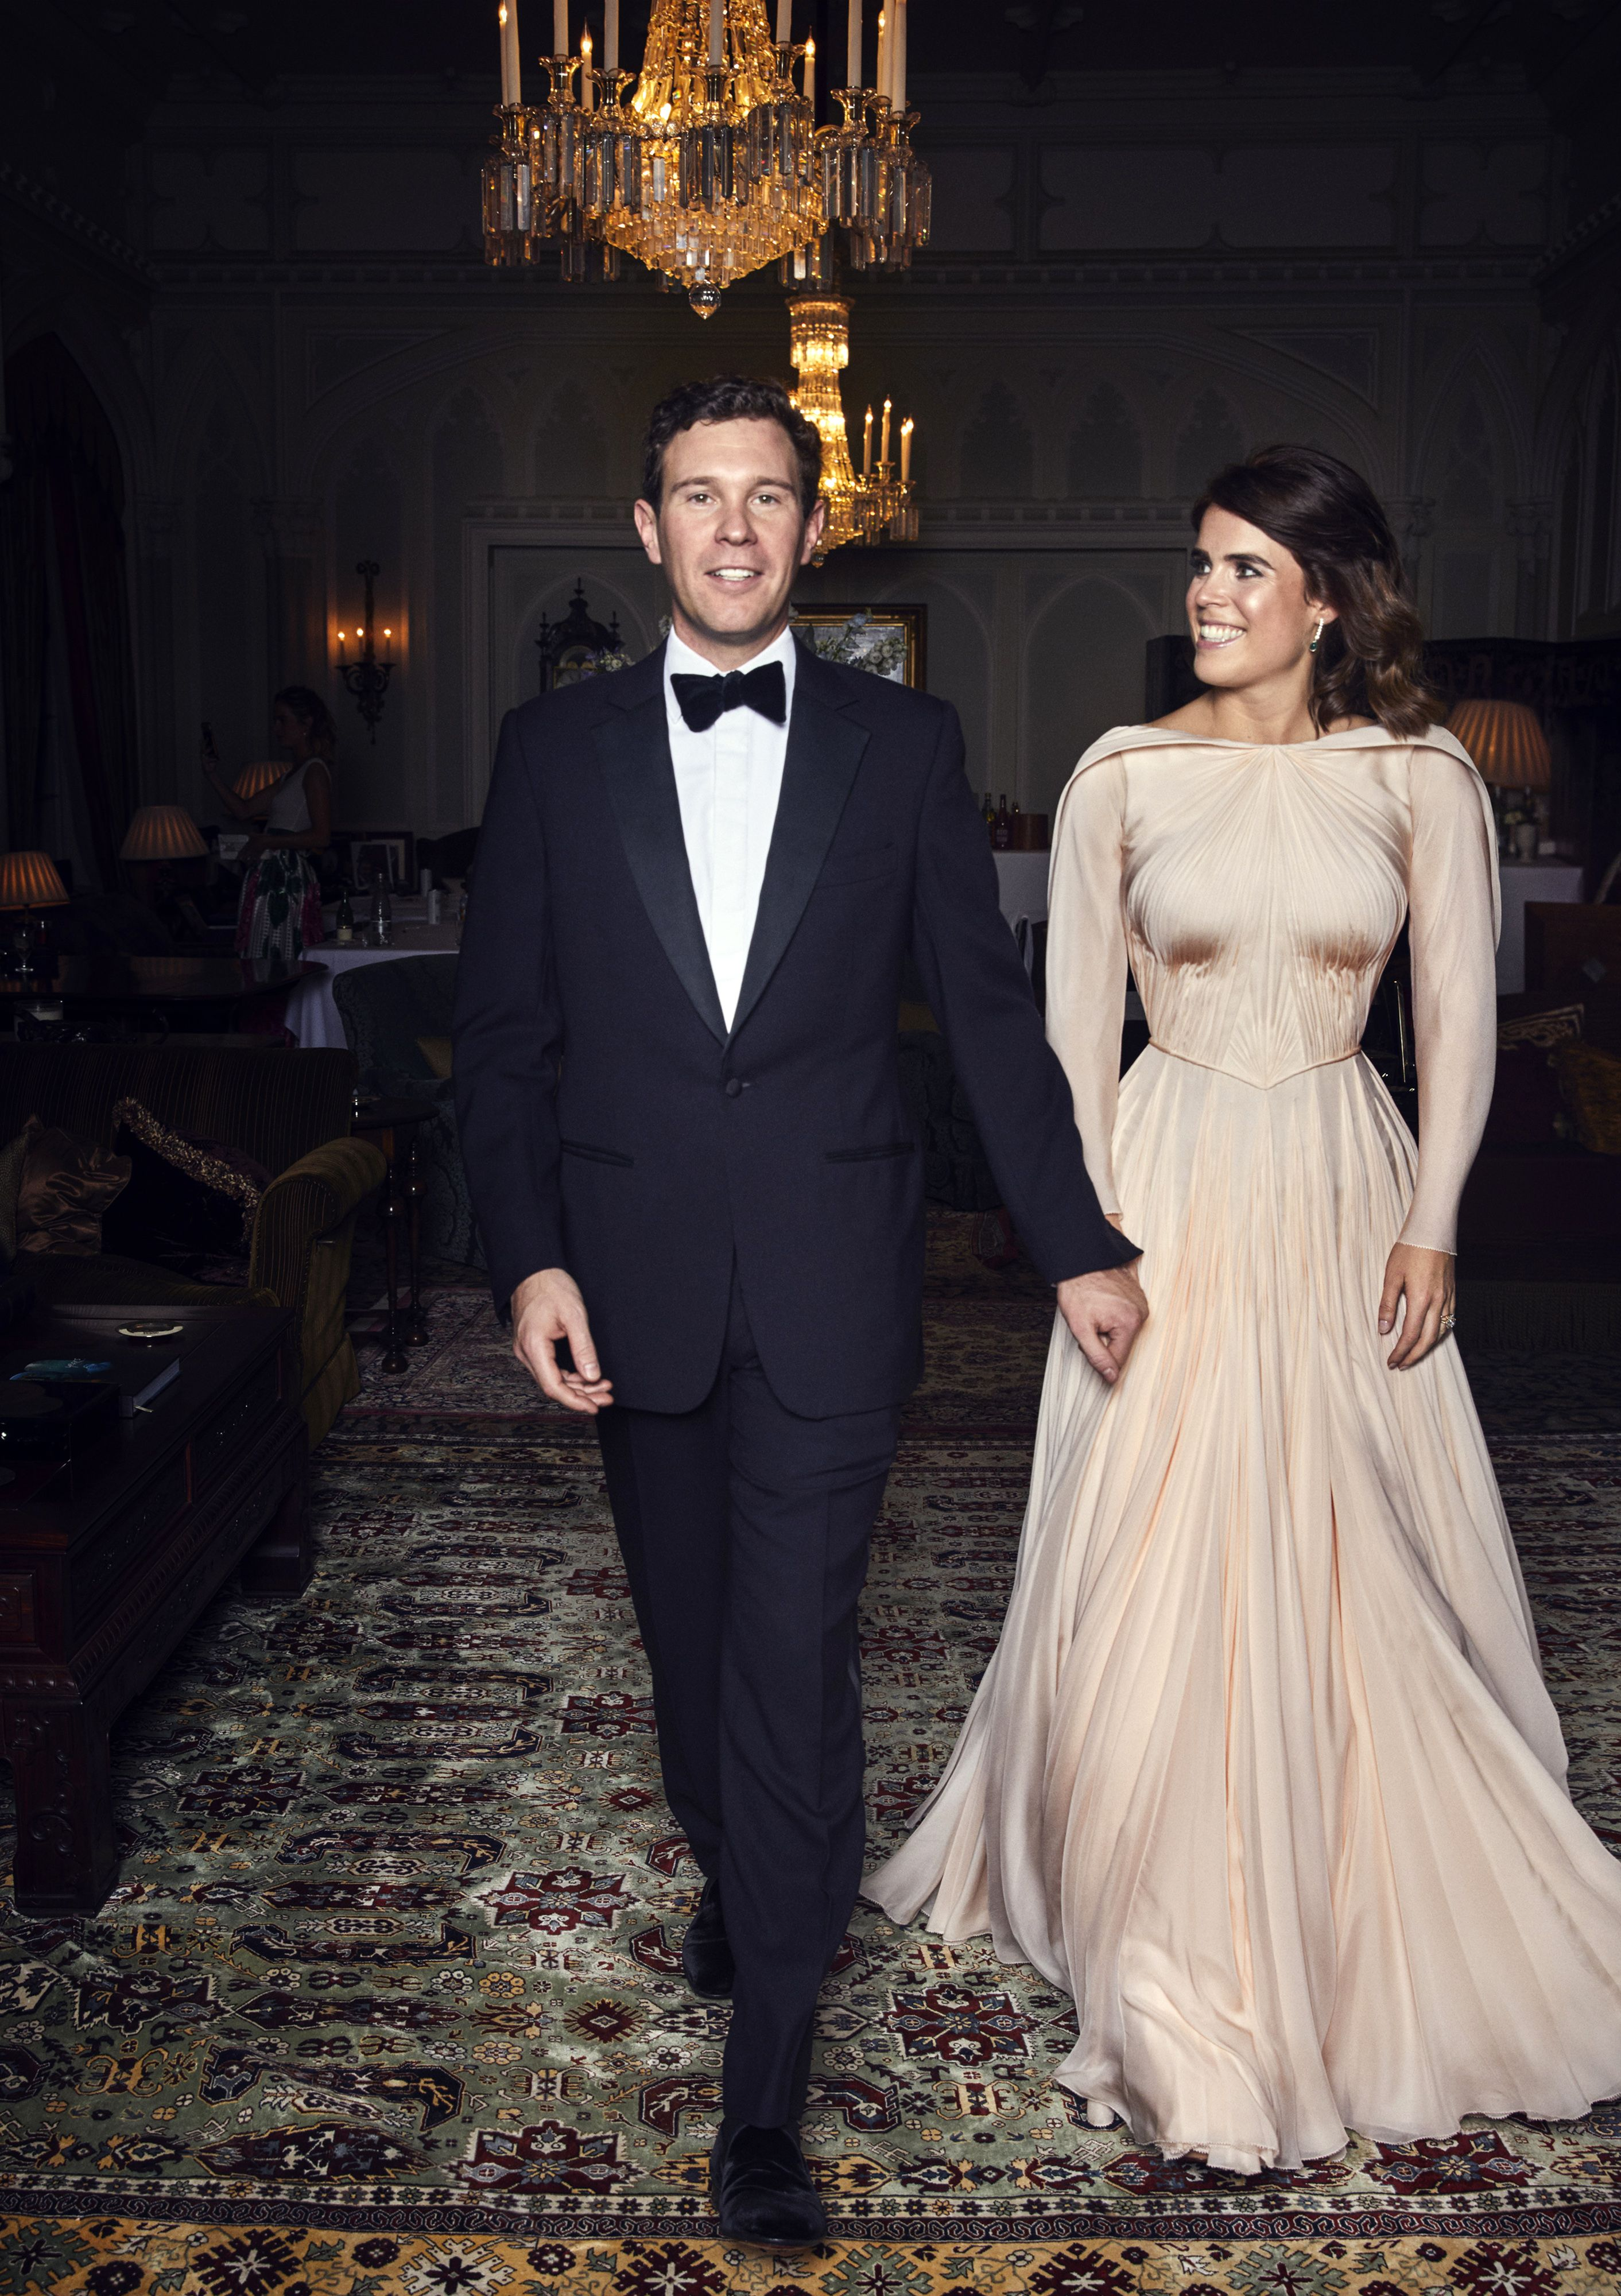 Princess Eugenie S Second Wedding Dress Was Inspired By Grace Kelly Eugenie S Wedding Exhibit